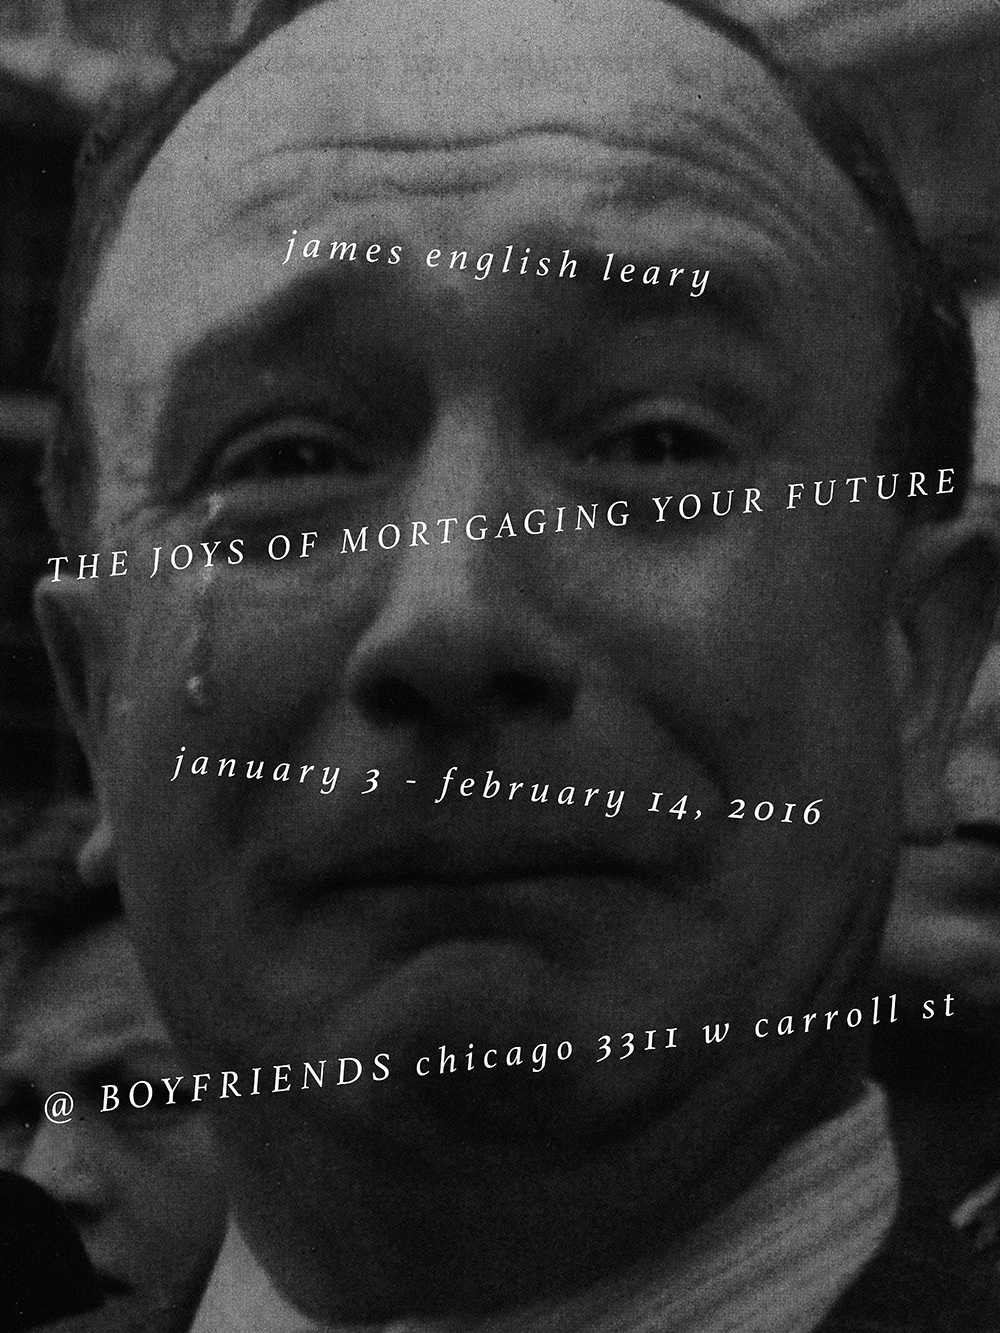 art, boyfriends chicago, james english leary, the joys of mortgaging your future, boyfriends gallery, boyfriends